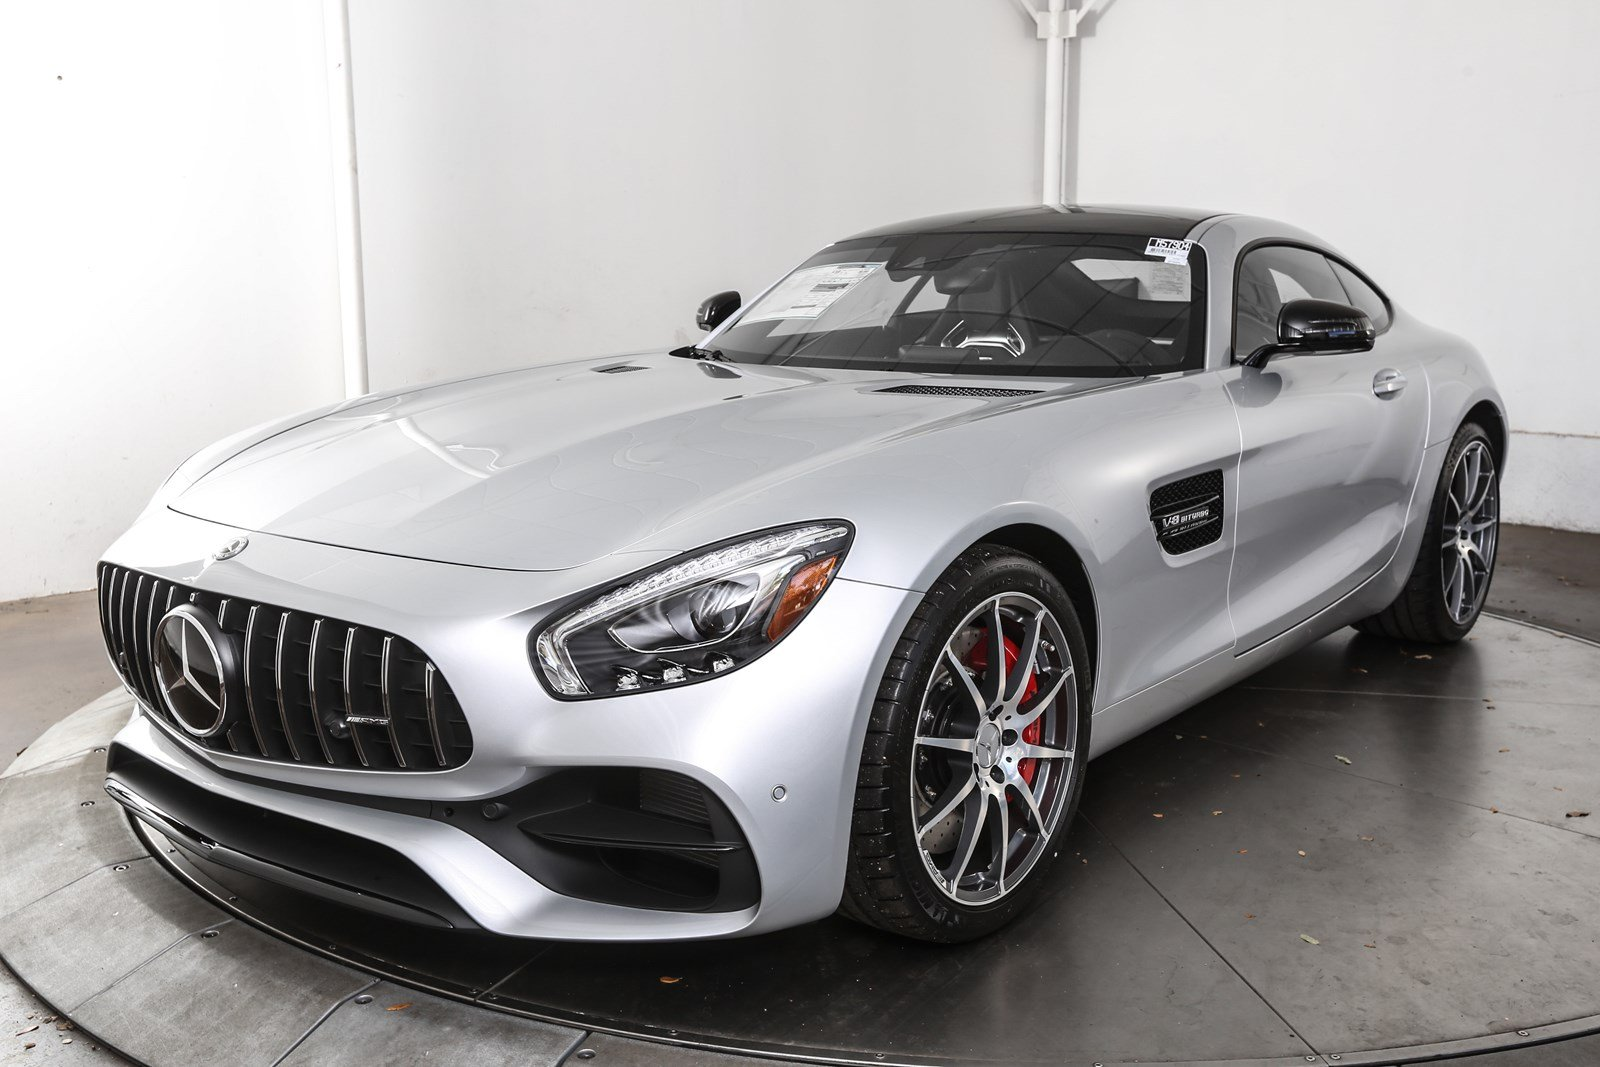 New 2018 mercedes benz amg gt amg gt s coupe in austin for 2018 mercedes benz amg gt